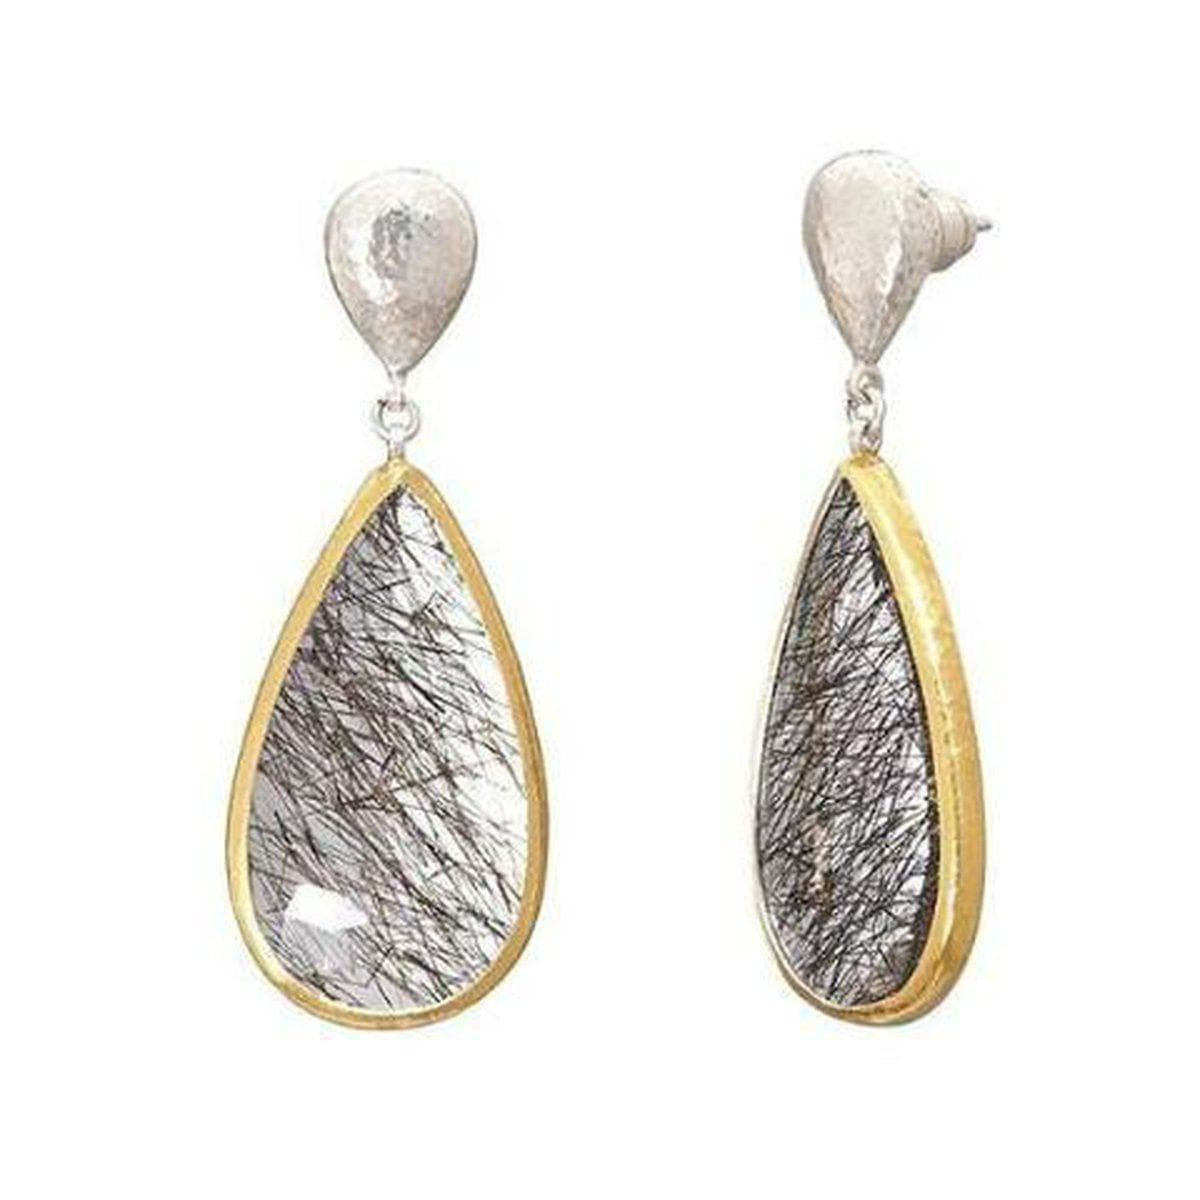 Galapagos Sterling Silver Tourmalinated Quartz Earrings - SE-U25726-QTT